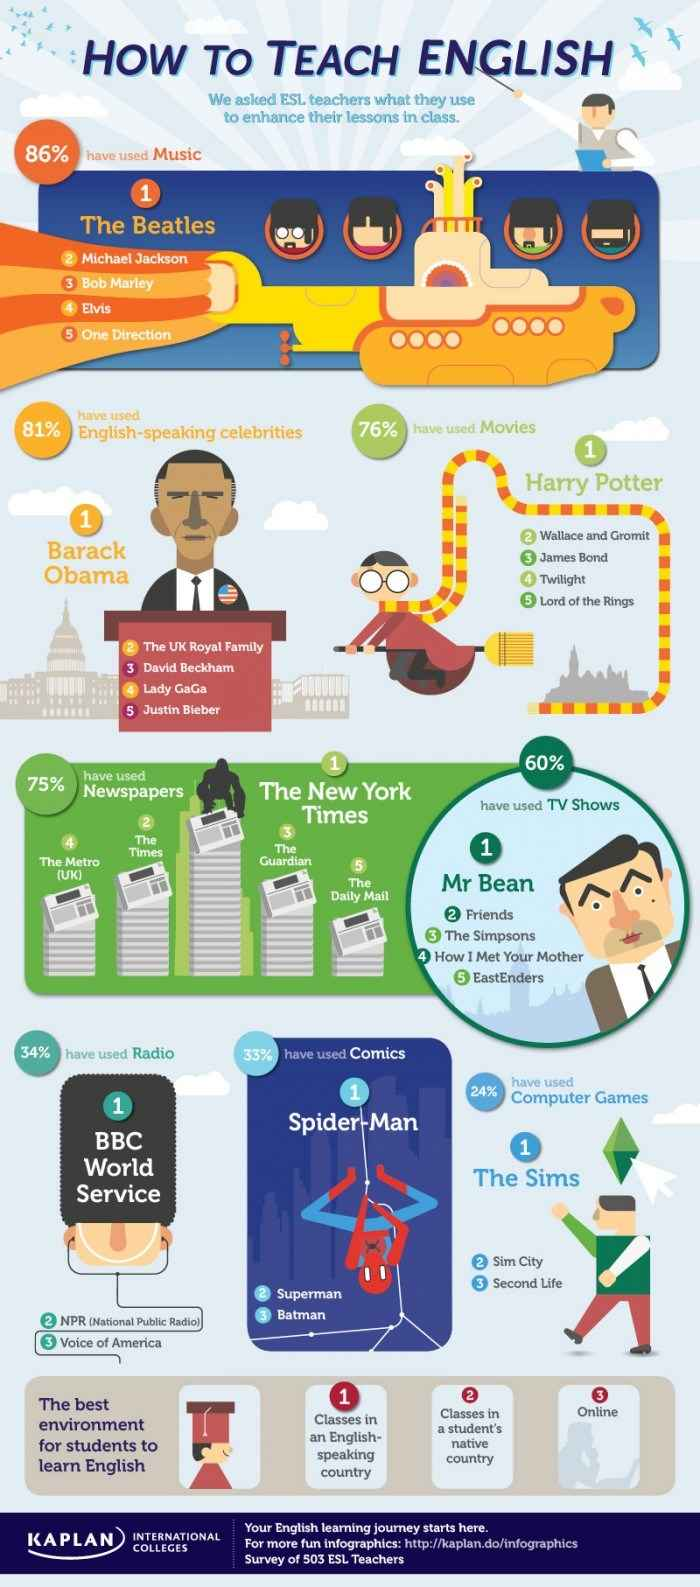 How to Teach English [Infographic] | Daily Infographic